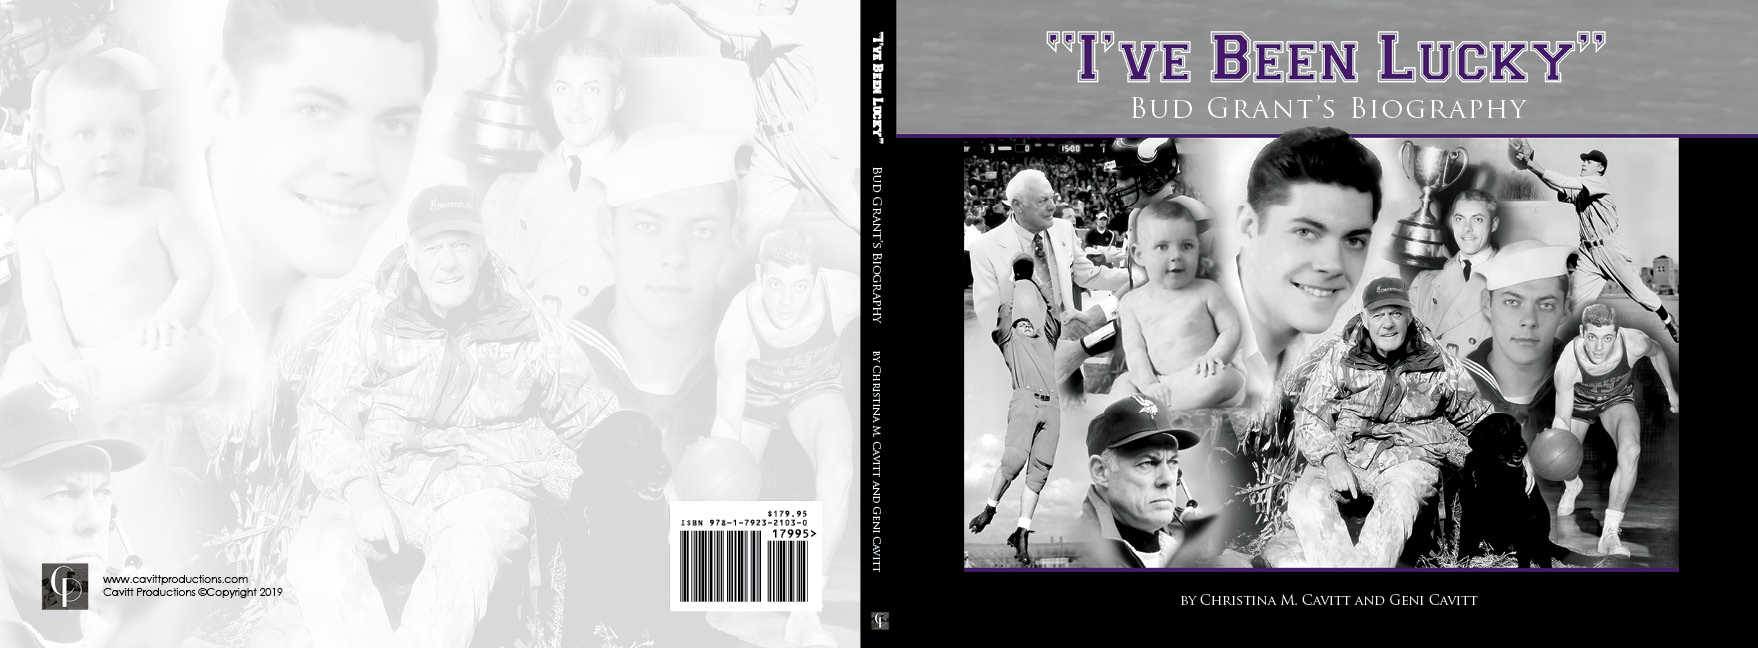 Bud Grant Biography-Book Cover Design